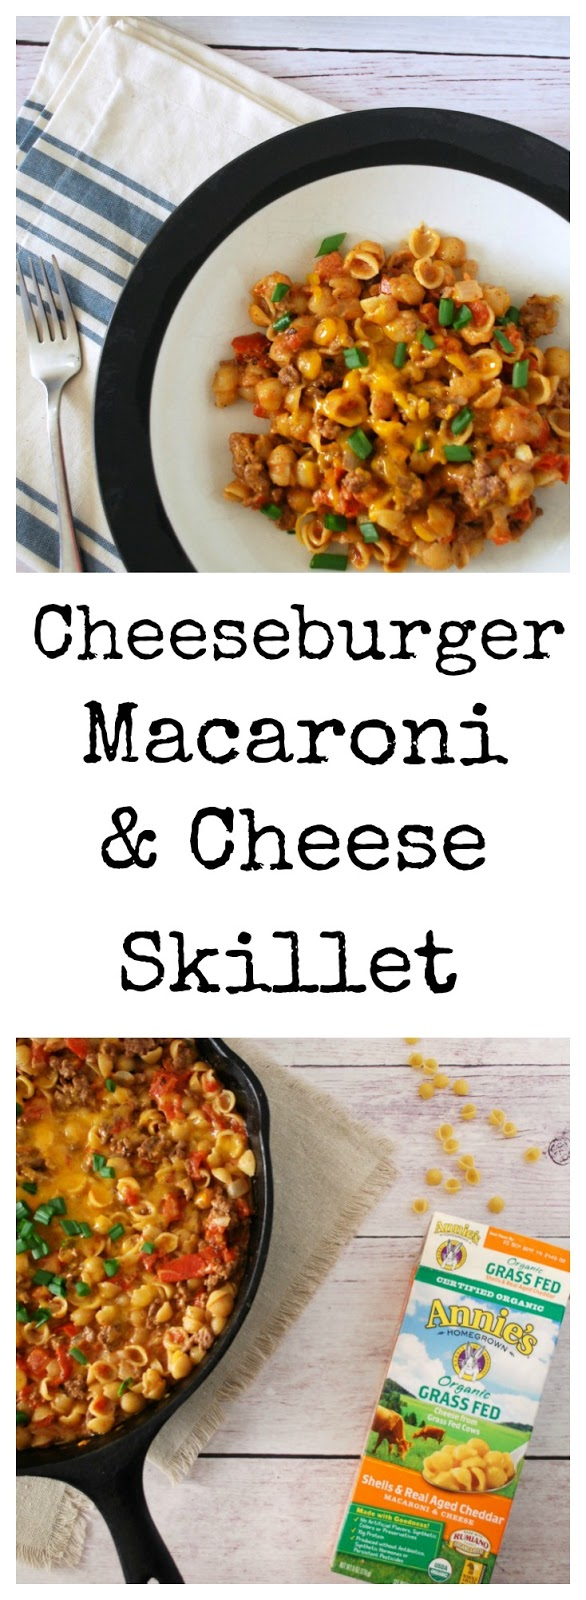 This 30 minute skillet meal is the perfect fall comfort food – filled with pasta, cheese sauce, and so many great flavors, its something the whole family will love! Easy Skillet Meal, Family Friendly, Weeknight Meal,